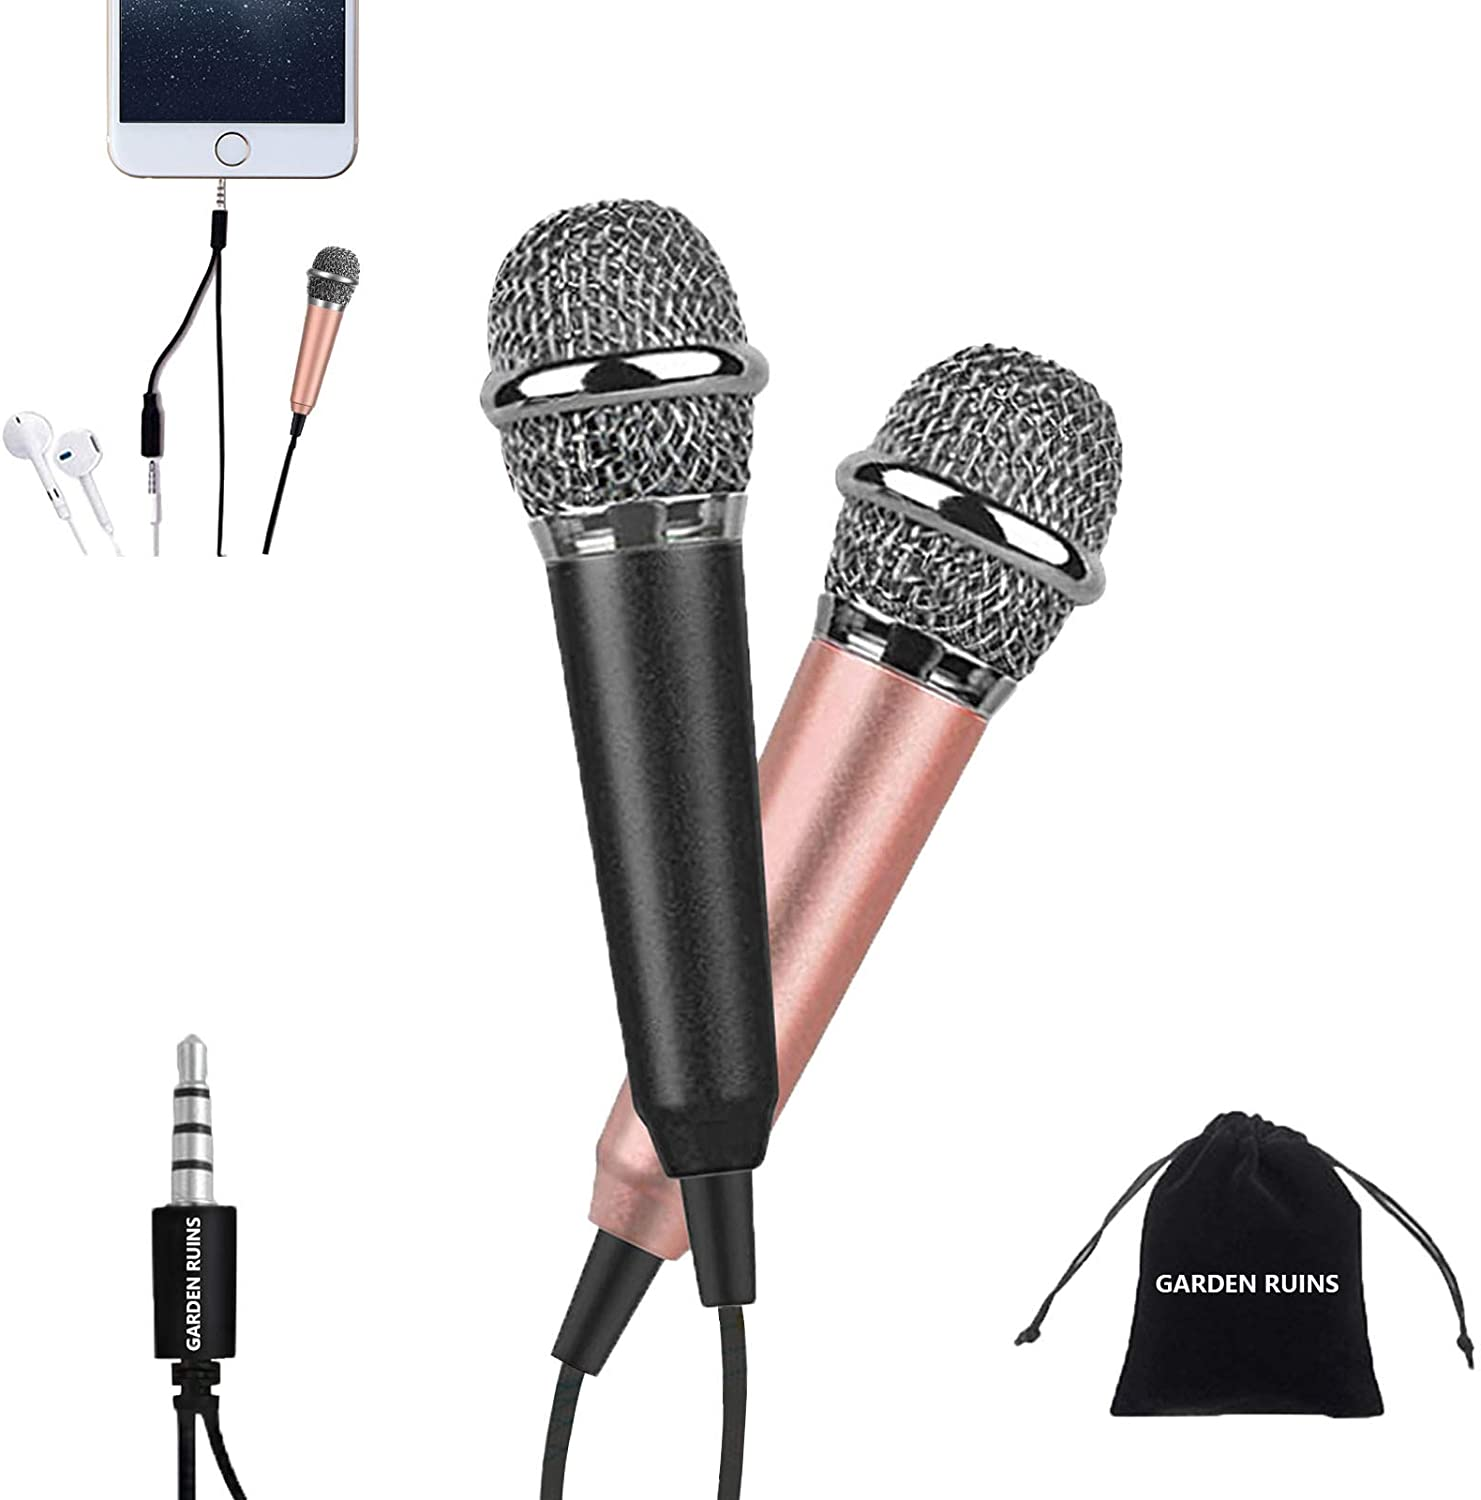 Mini Microphone, Karaoke Microphone, Asmr Microphone, Small Microphone for Singing, Recording and Listening to Songs, for Portable Laptop/Apple Samsung Android (Black&Rose Gold)